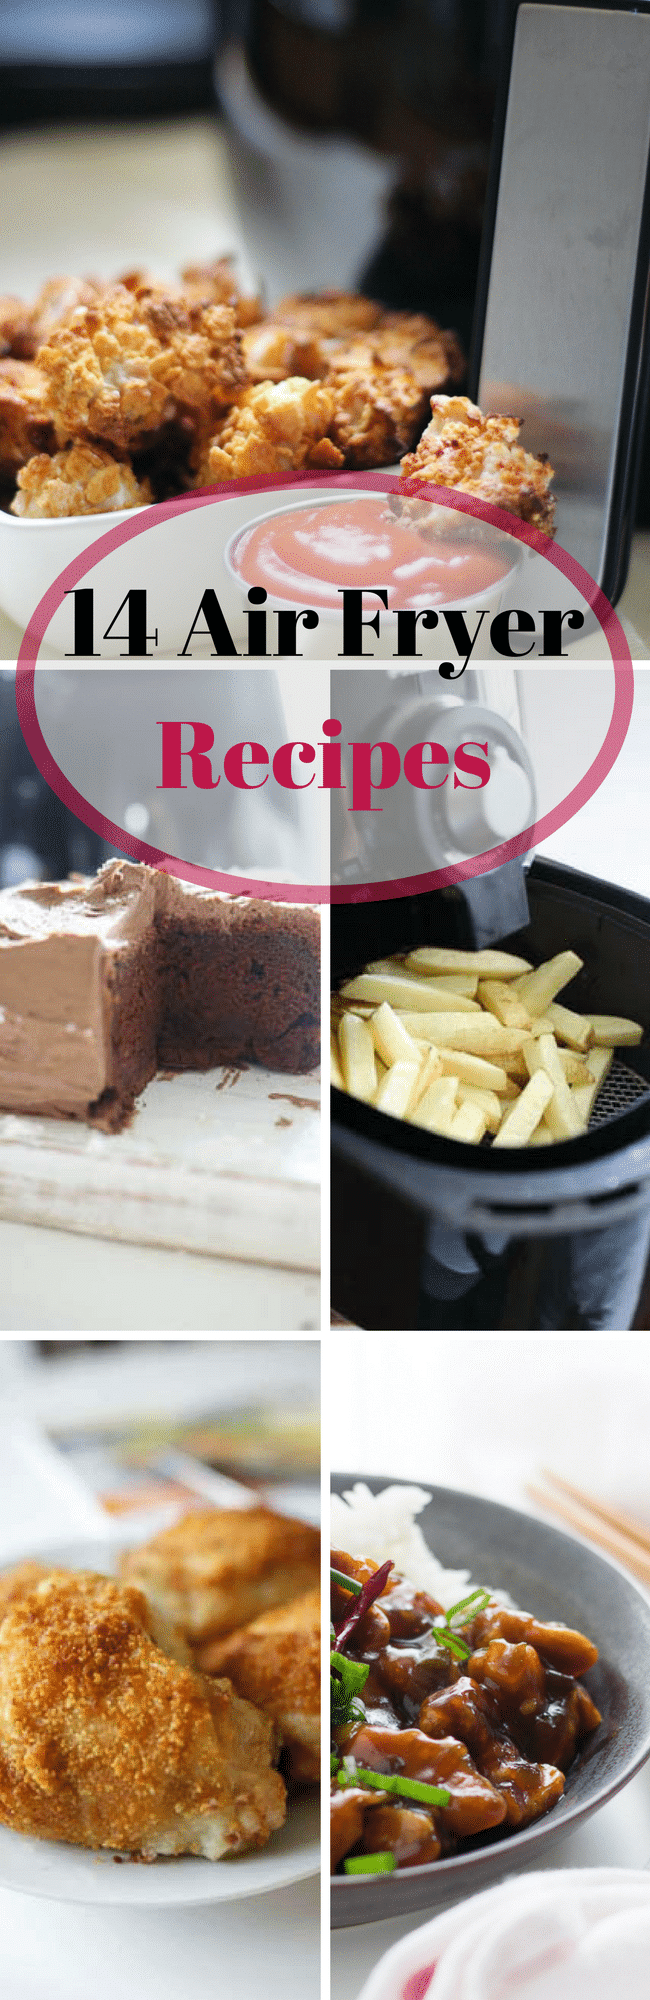 14 Great Recipes for Air Fryers. Easy air fryer recipes for any occasion. Great list to get you to start cooking in your air fryer. #airfryer #recipe #airfryerrecipes #reciperoundup #airfryerbreakfast #airfryerchicken #airfryersteak